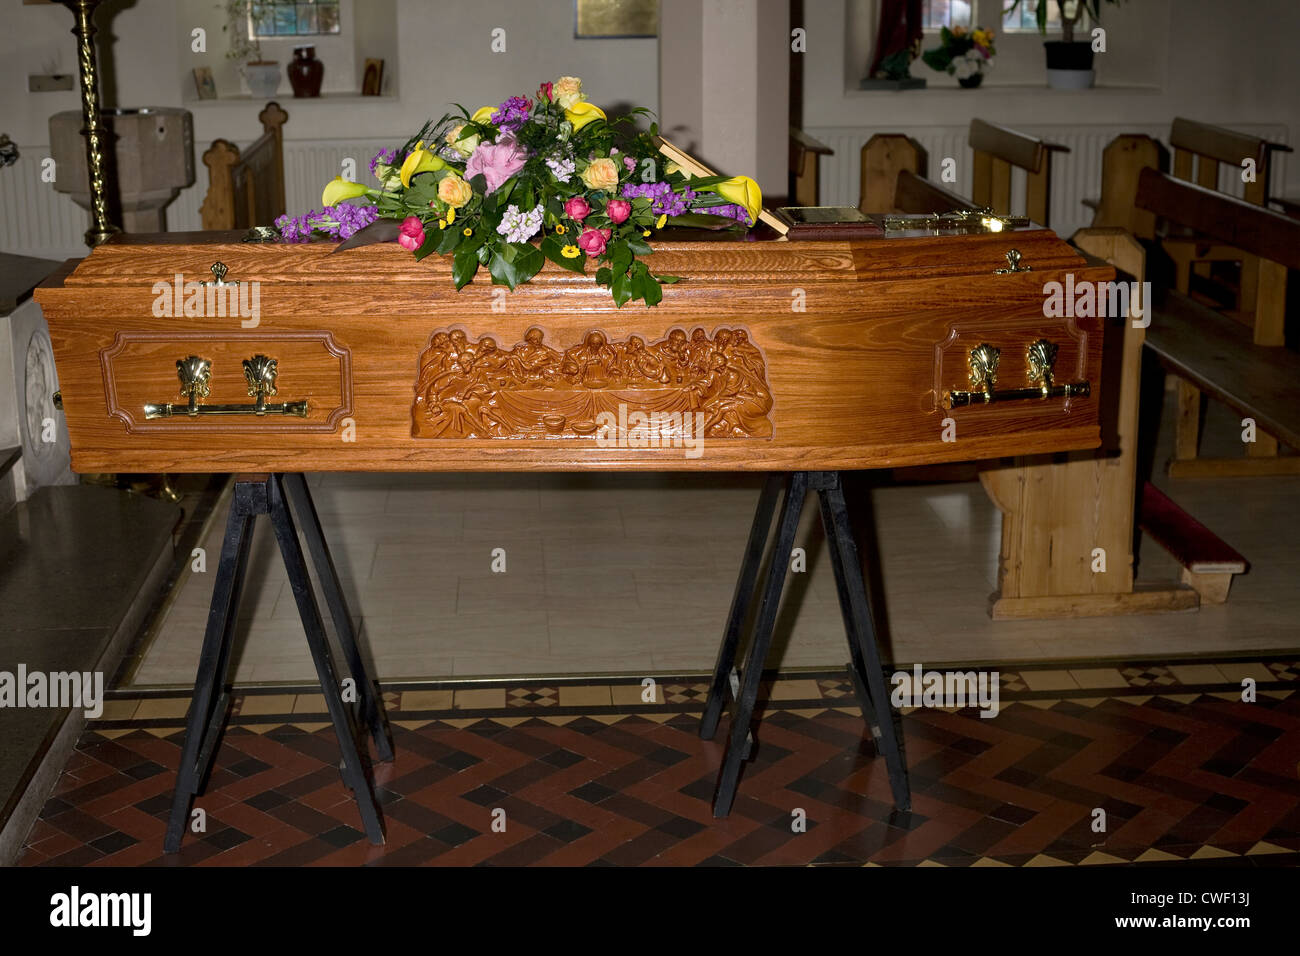 A wooden coffin with last supper design and flowers on top resting in church ready for the occupant's funeral - Stock Image